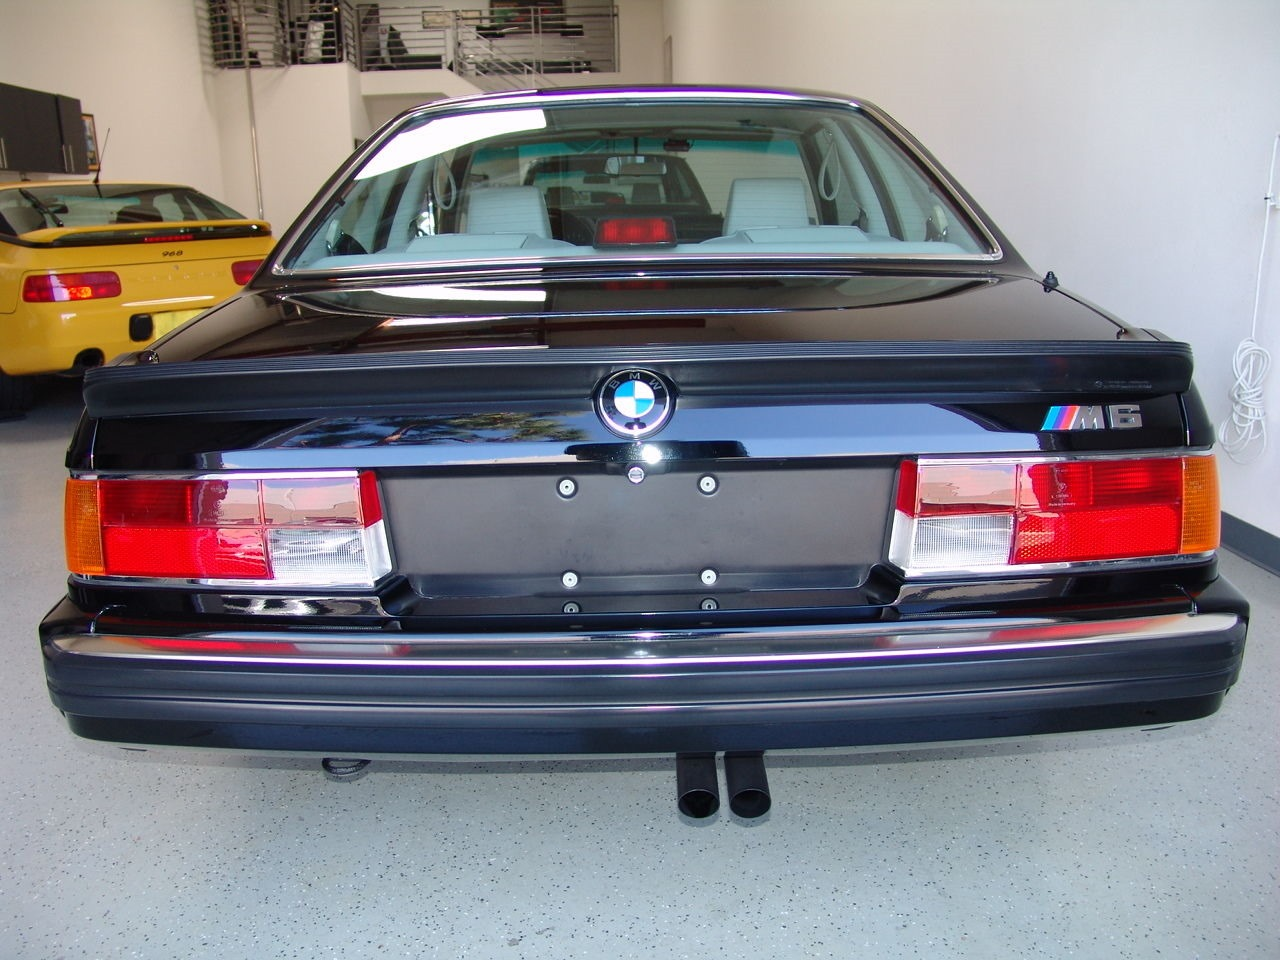 1988 Bmw E24 M6 For Sale Priced At Usd158 800 Autoevolution